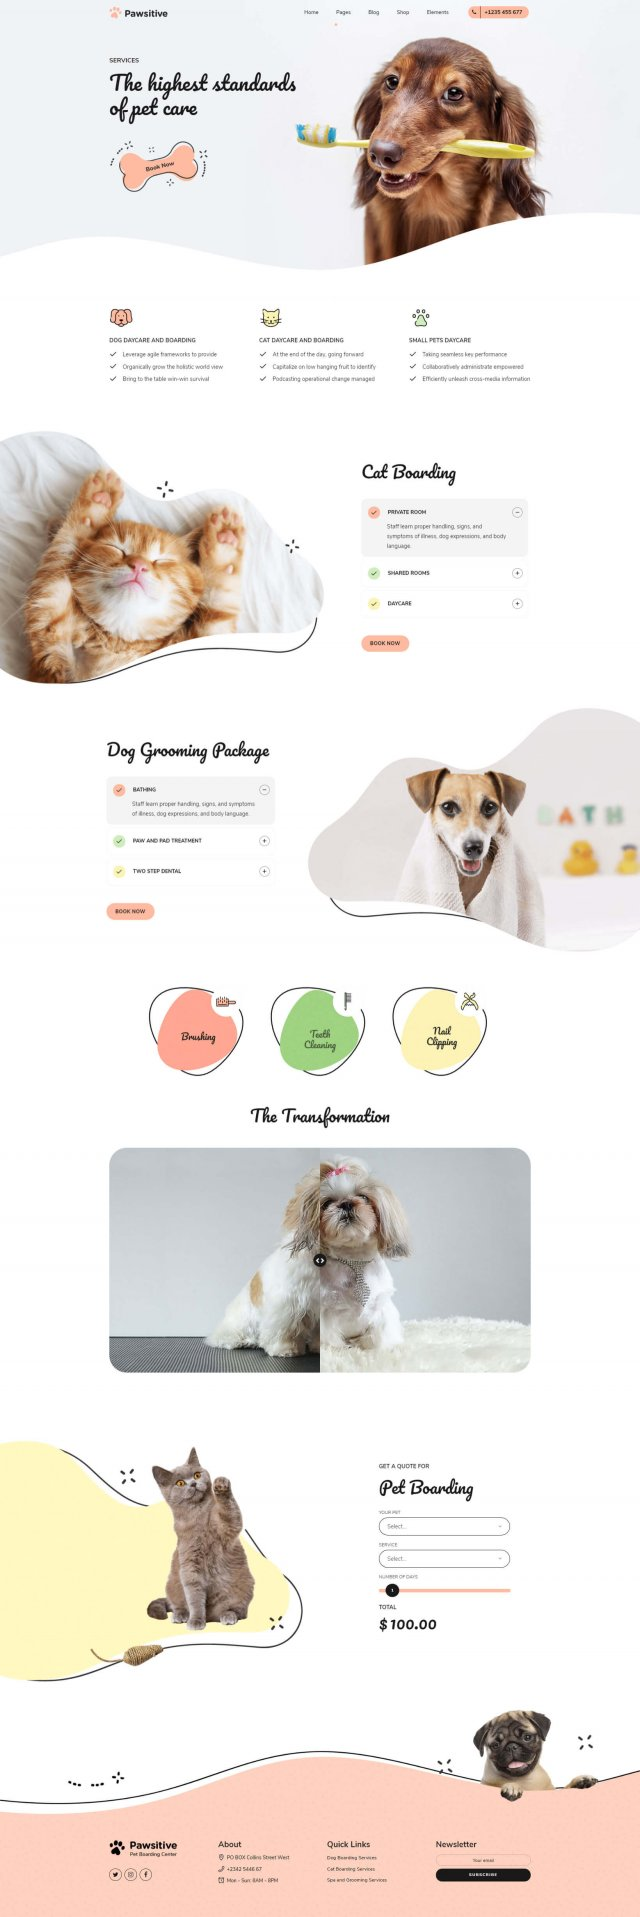 http://pawsitive.bold-themes.com/wp-content/uploads/2019/09/Coco-Services-640x1917.jpg